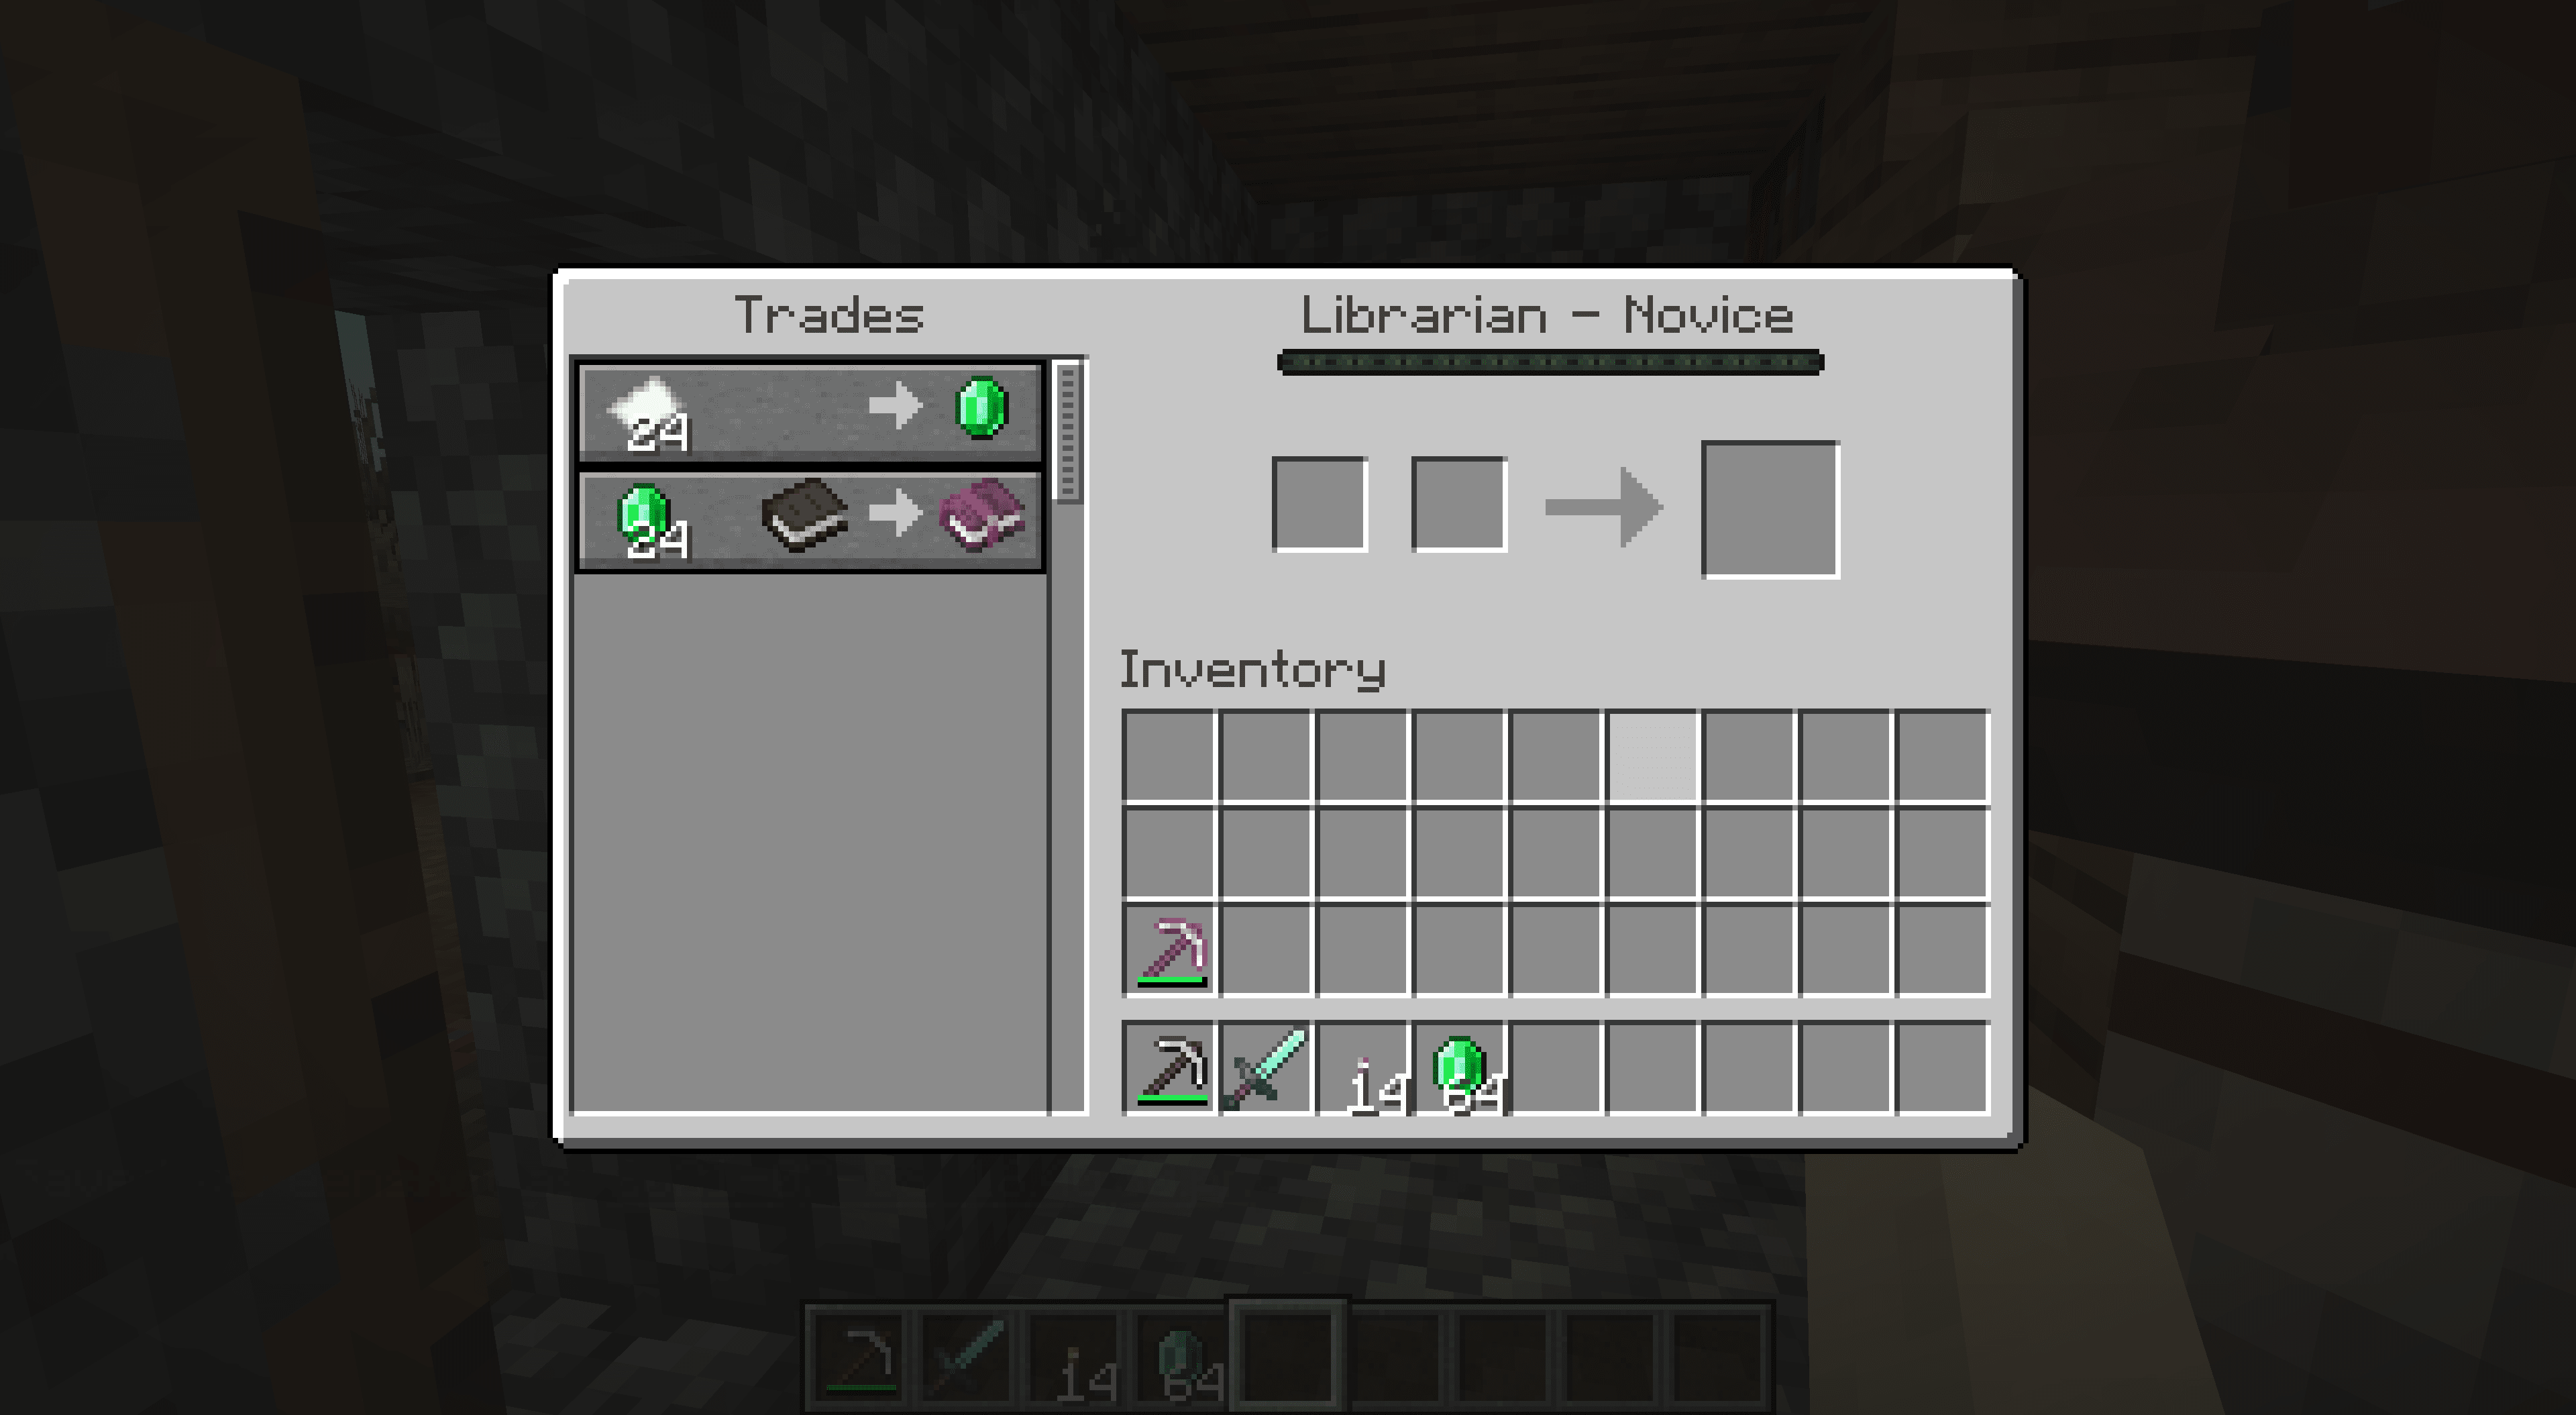 Trading with a librarian in Minecraft.